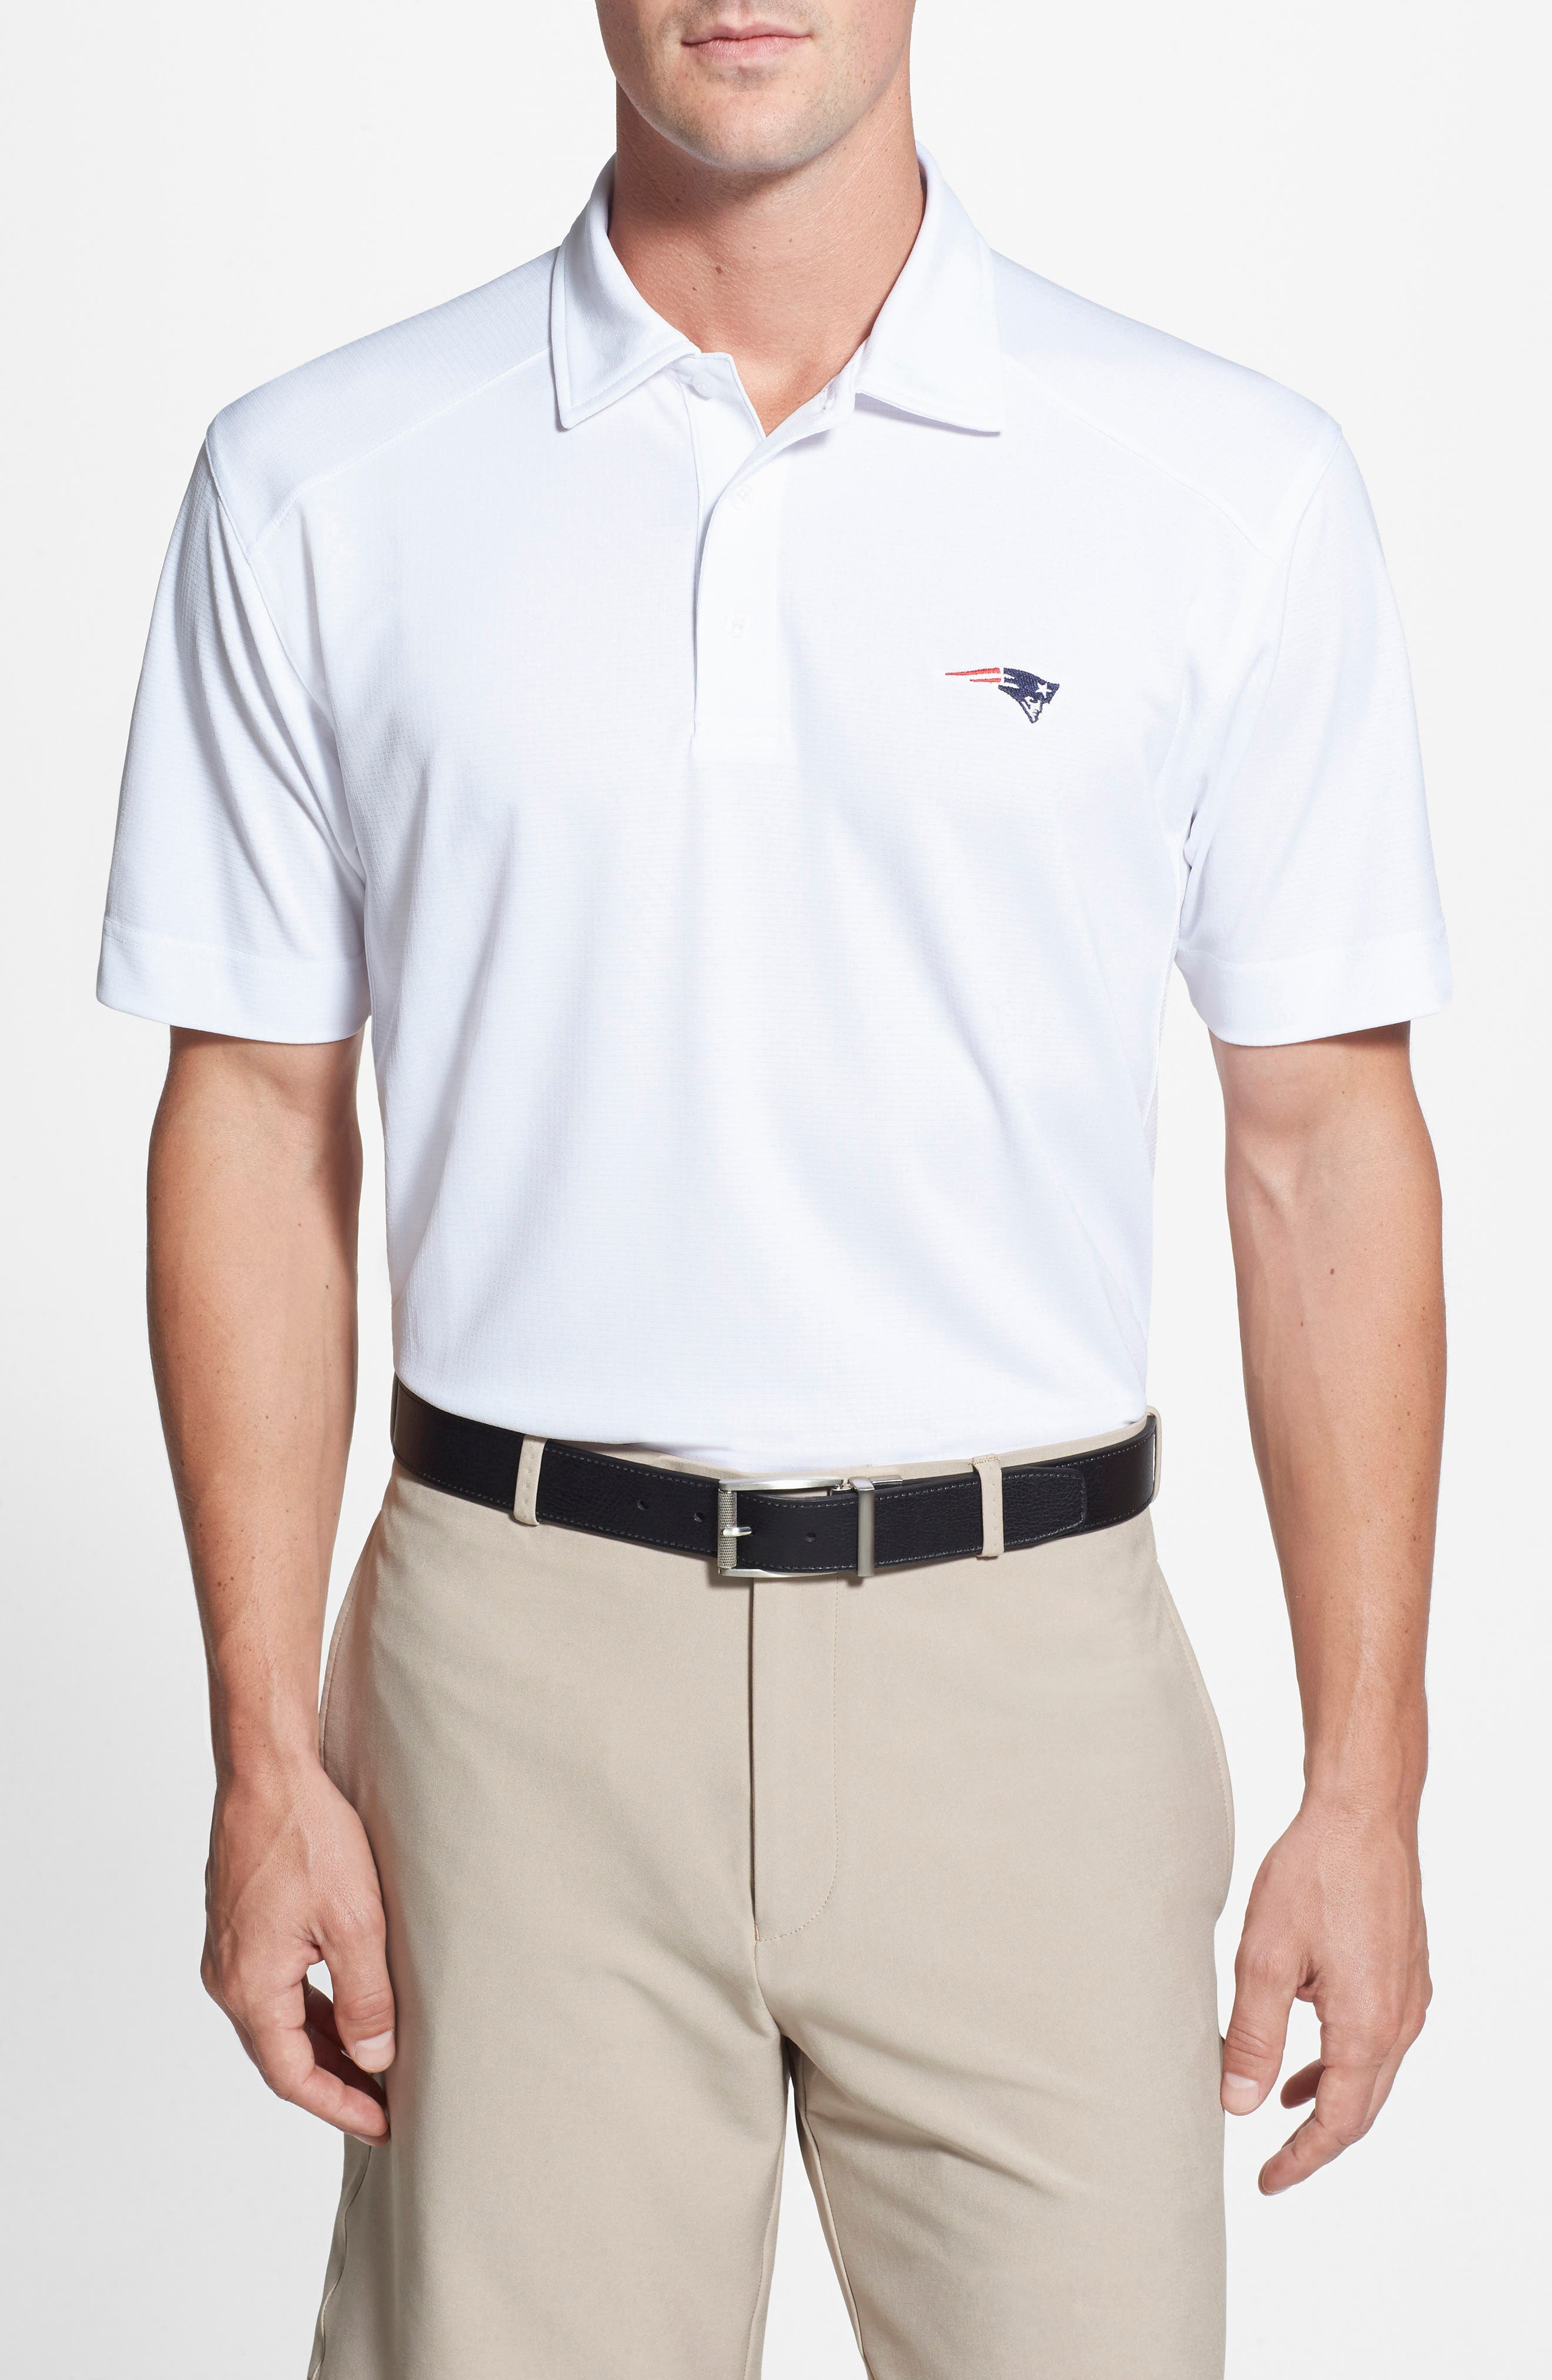 'New England Patriots - Genre' DryTec Moisture Wicking Polo,                             Alternate thumbnail 2, color,                             100